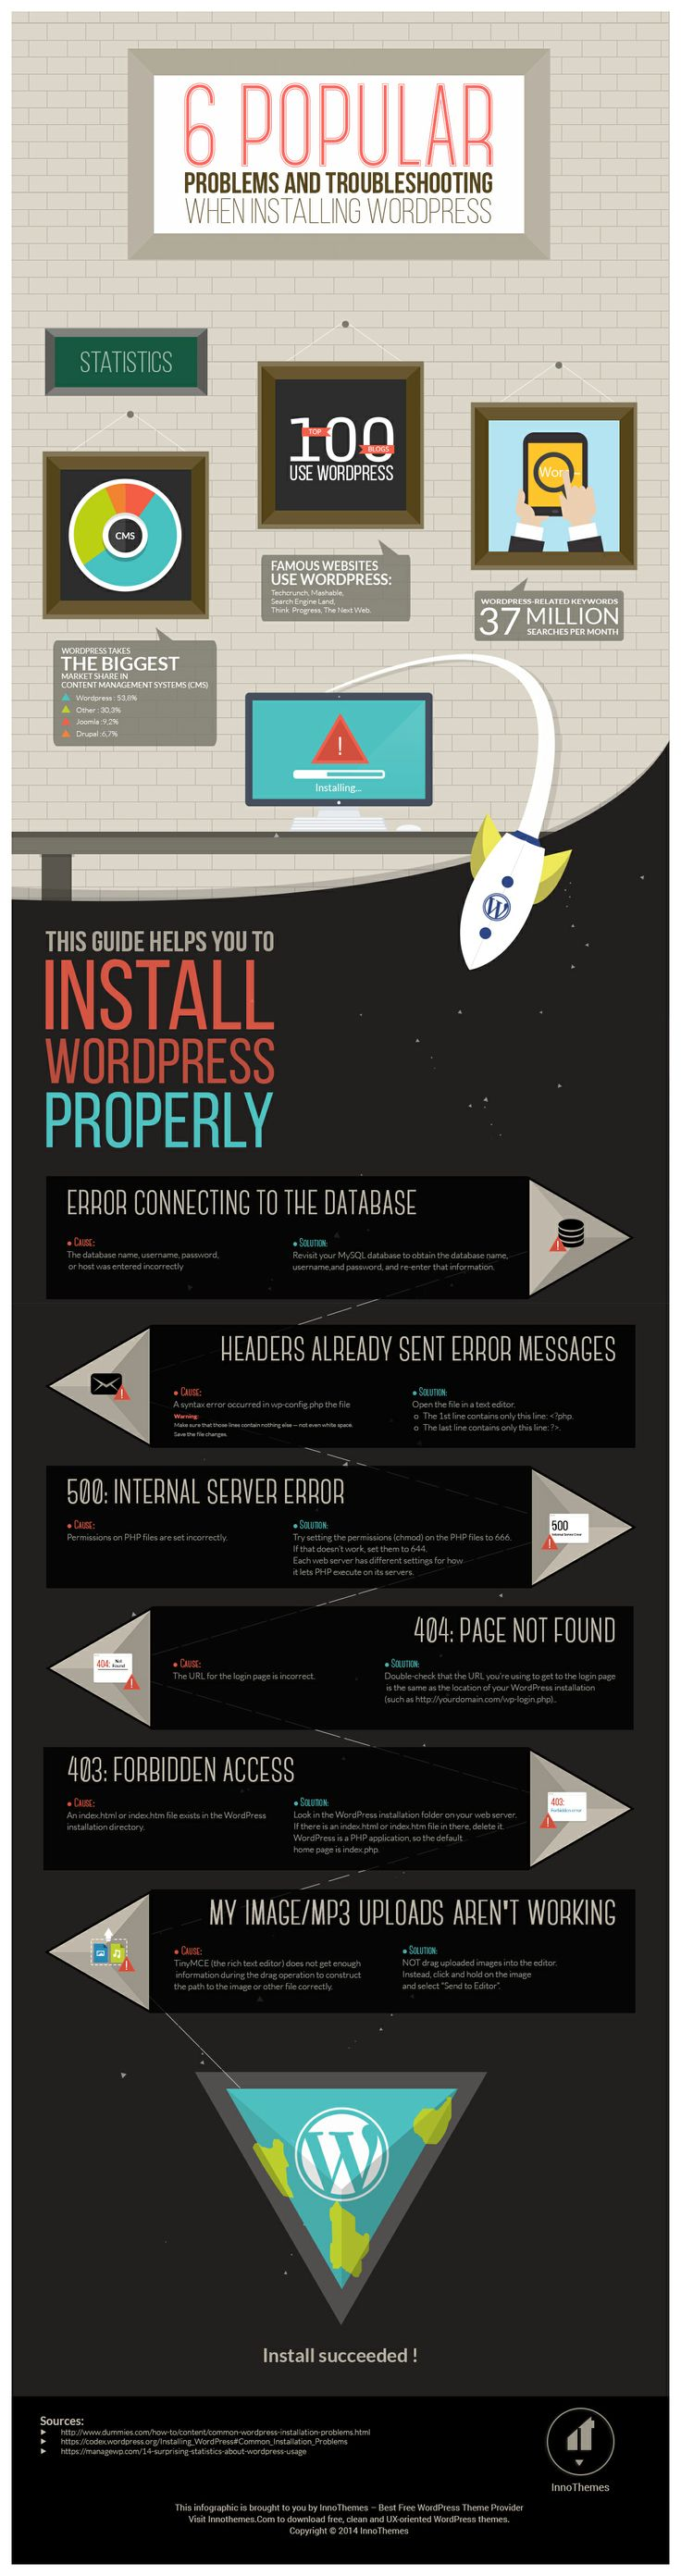 This infographic is a summary of  6 popular problems and troubleshooting  when installing Wordpress